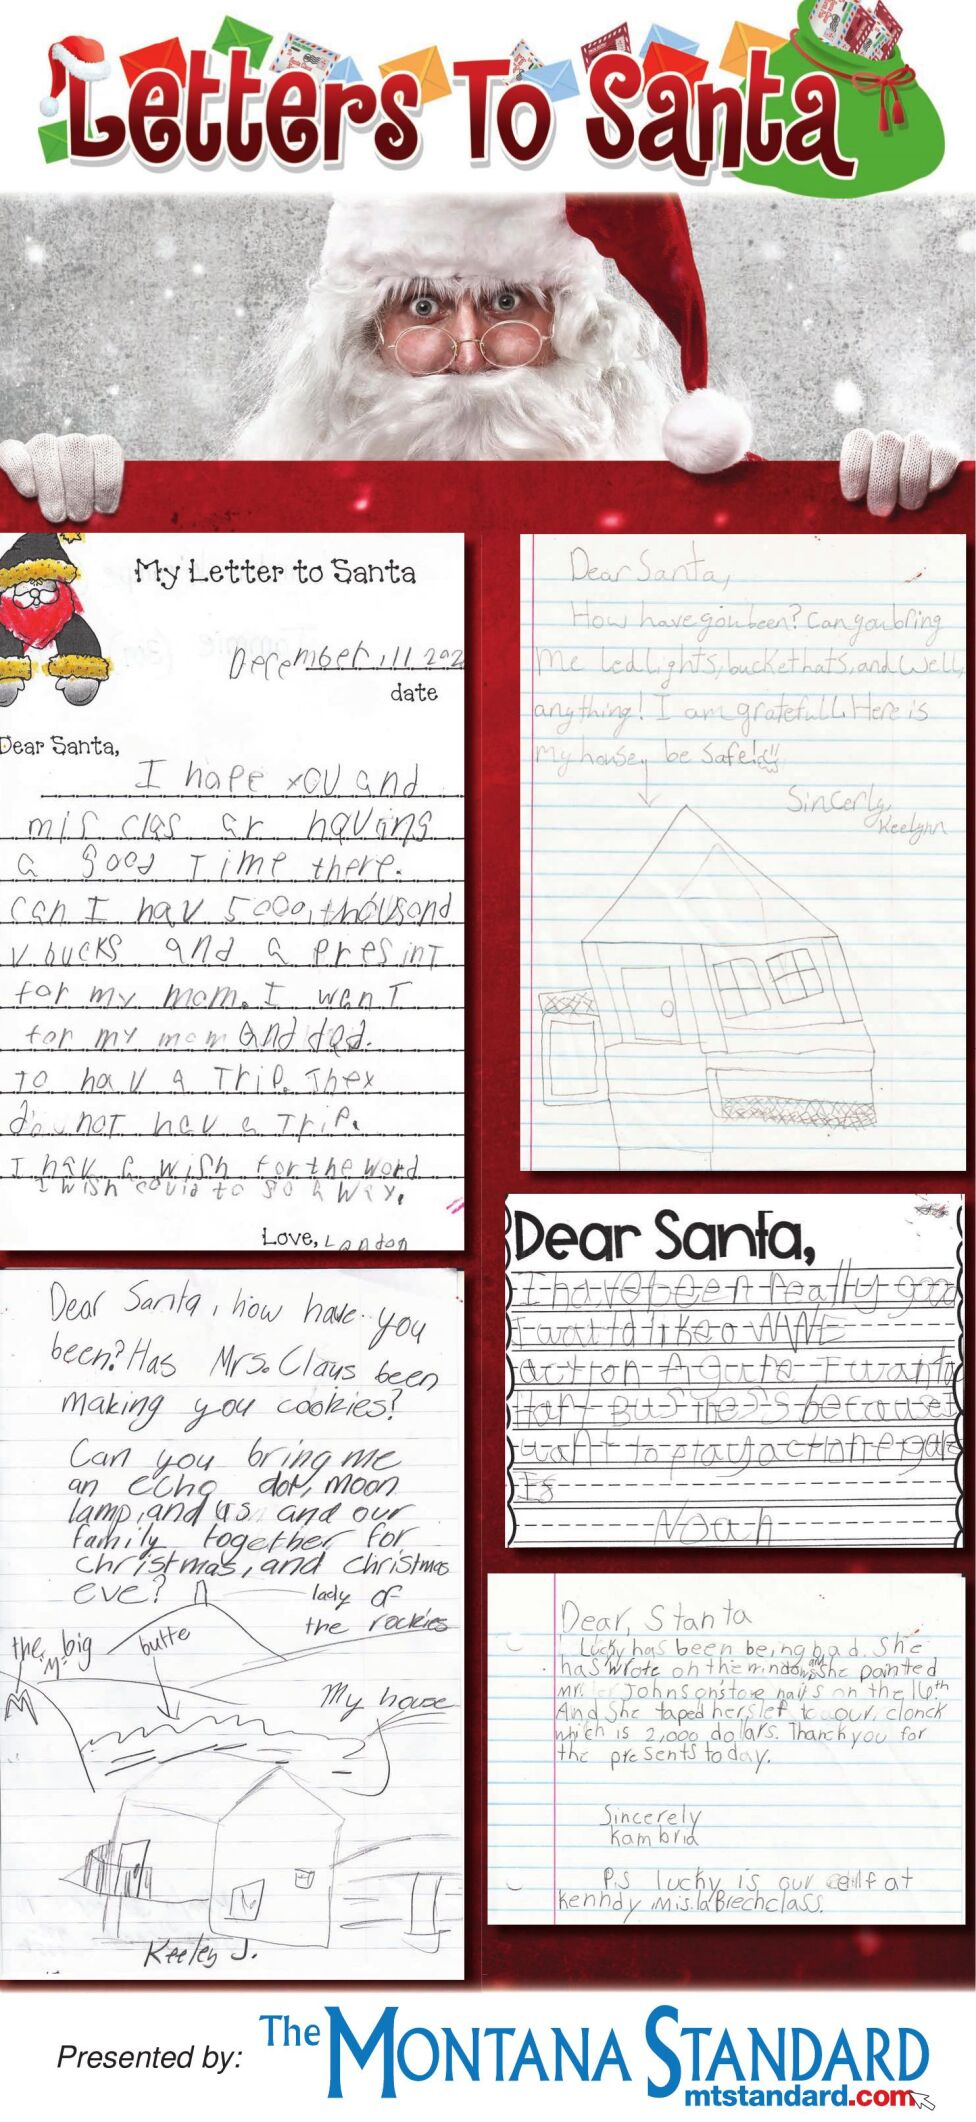 Letters to Santa 2020